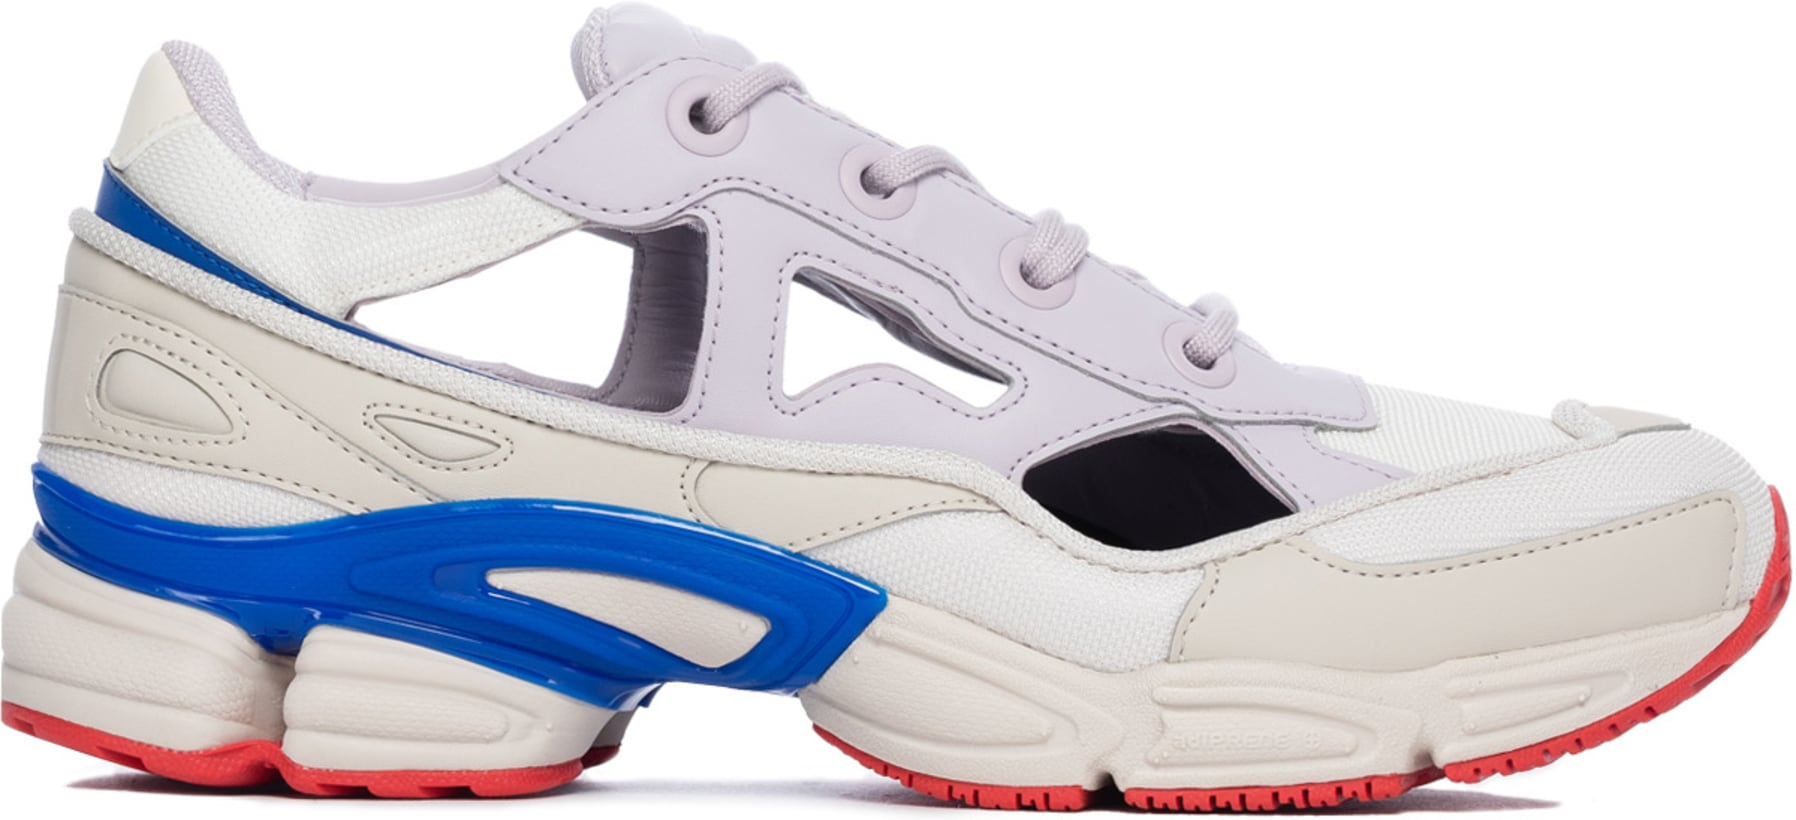 89ad19679155 adidas by Raf Simons. Replicant Ozweego - Core Brown Core Brown Cream White